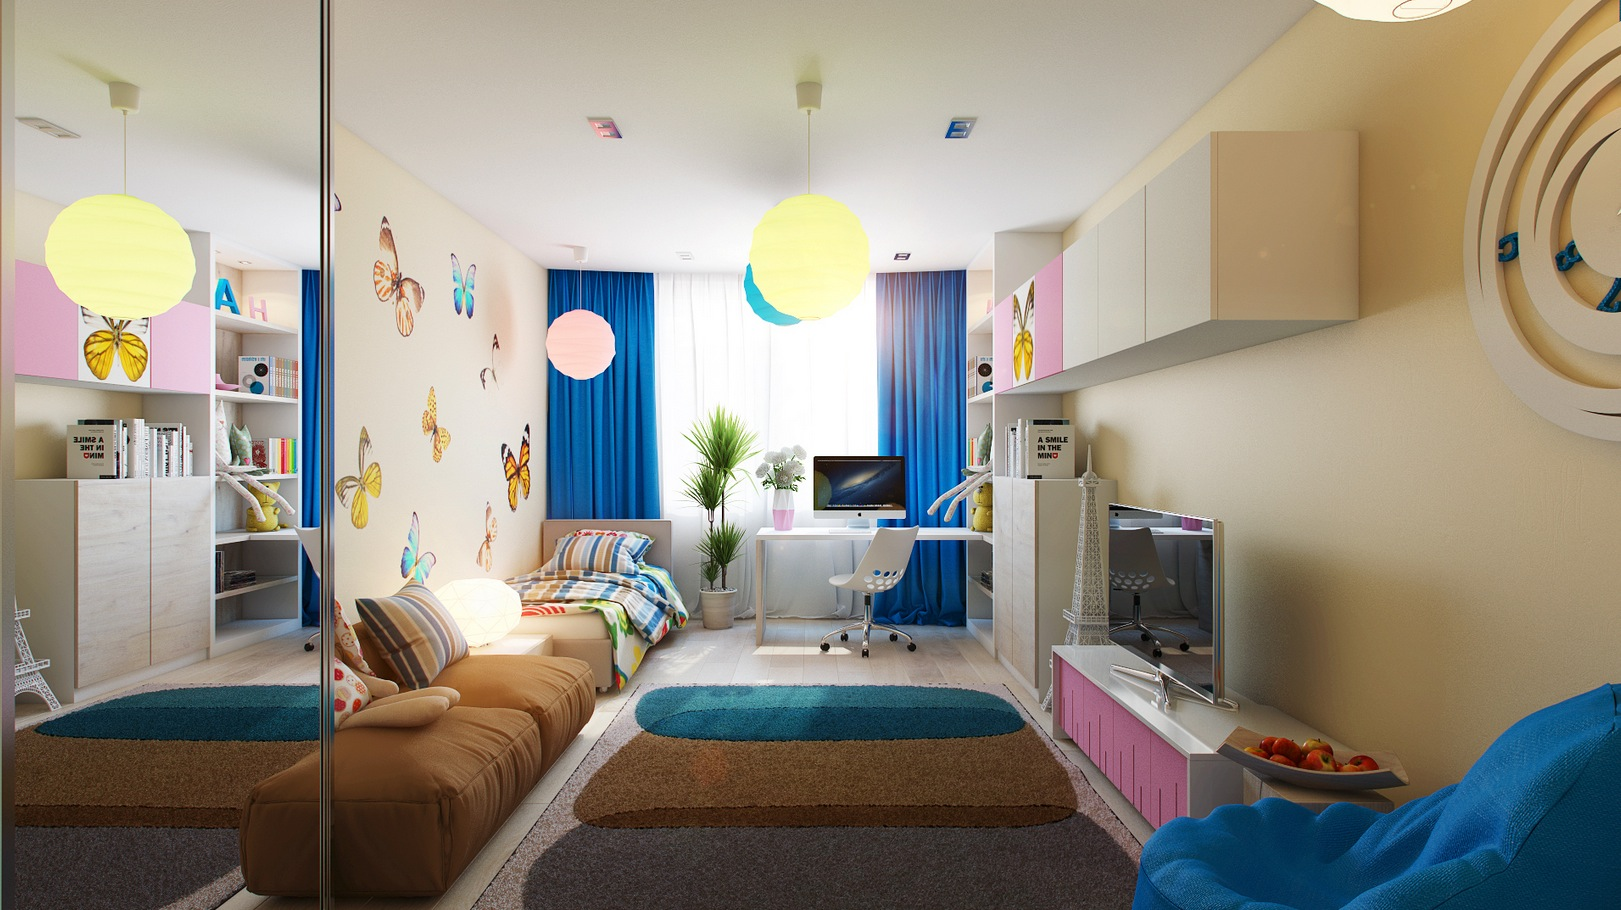 Casting color over kids rooms for Dormitorio hombre